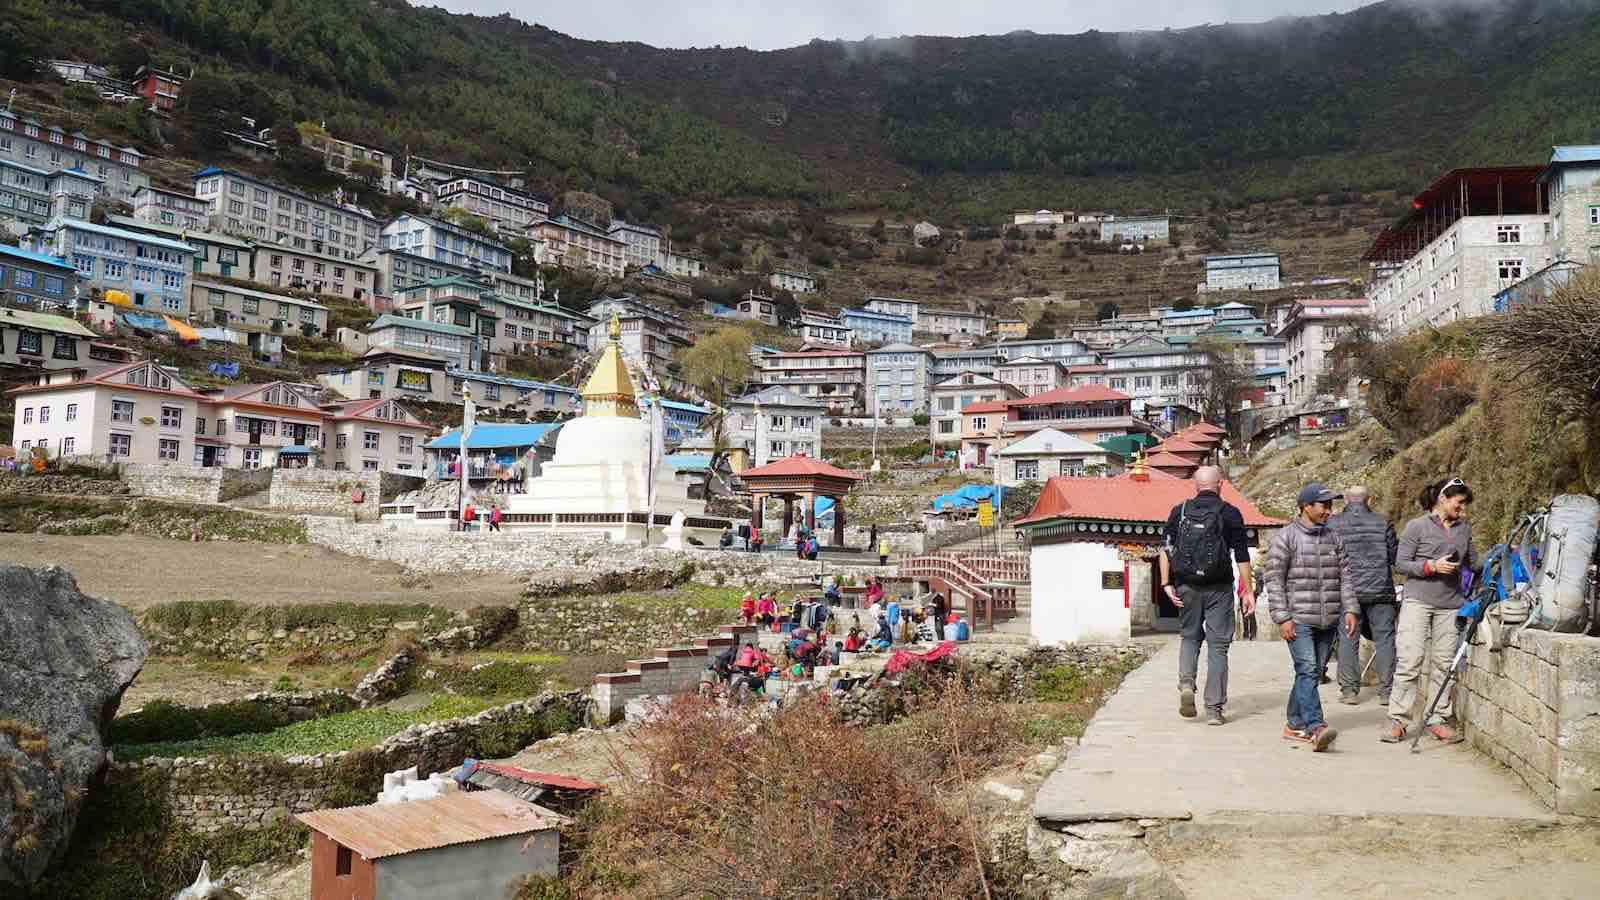 Namche: a pretty decently sized town carved right into the side of a mountain